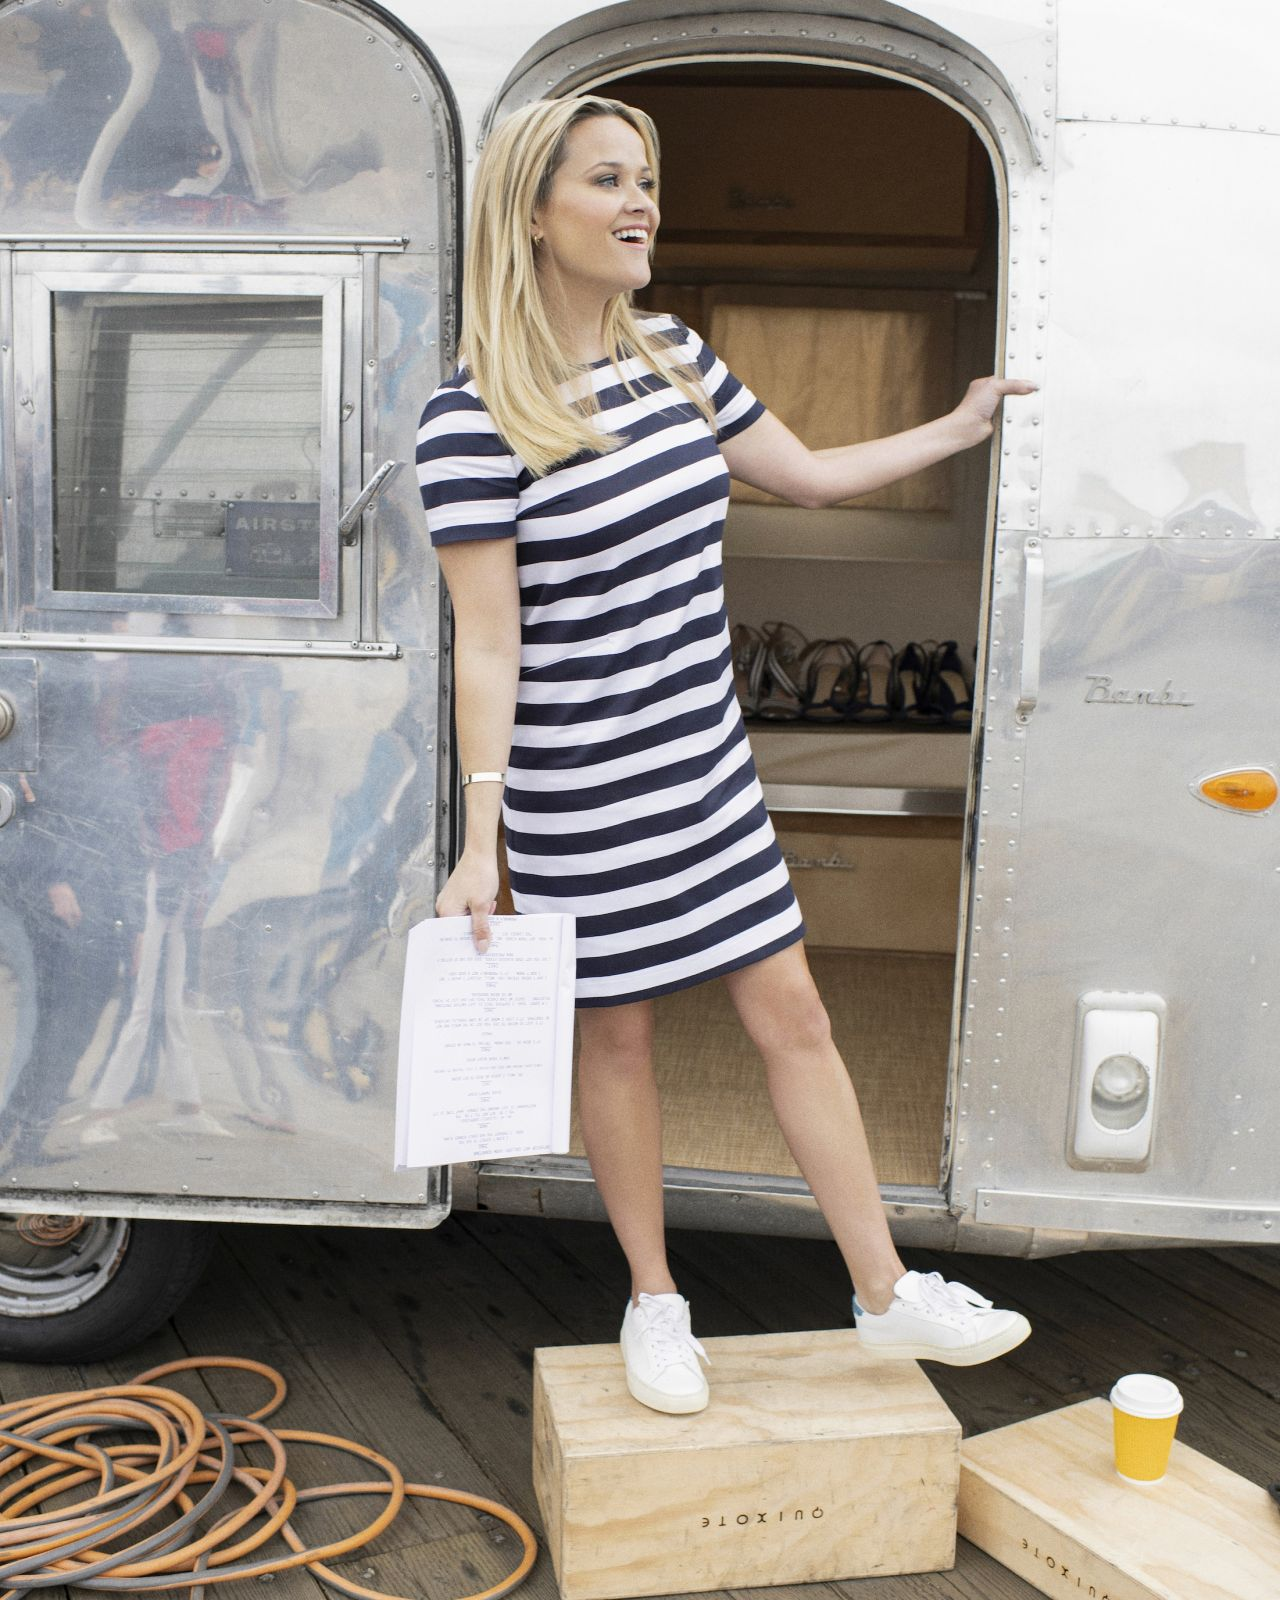 http://celebmafia.com/wp-content/uploads/2018/05/reese-witherspoon-draper-james-clothing-line-summer-campaign-2018-5.jpg